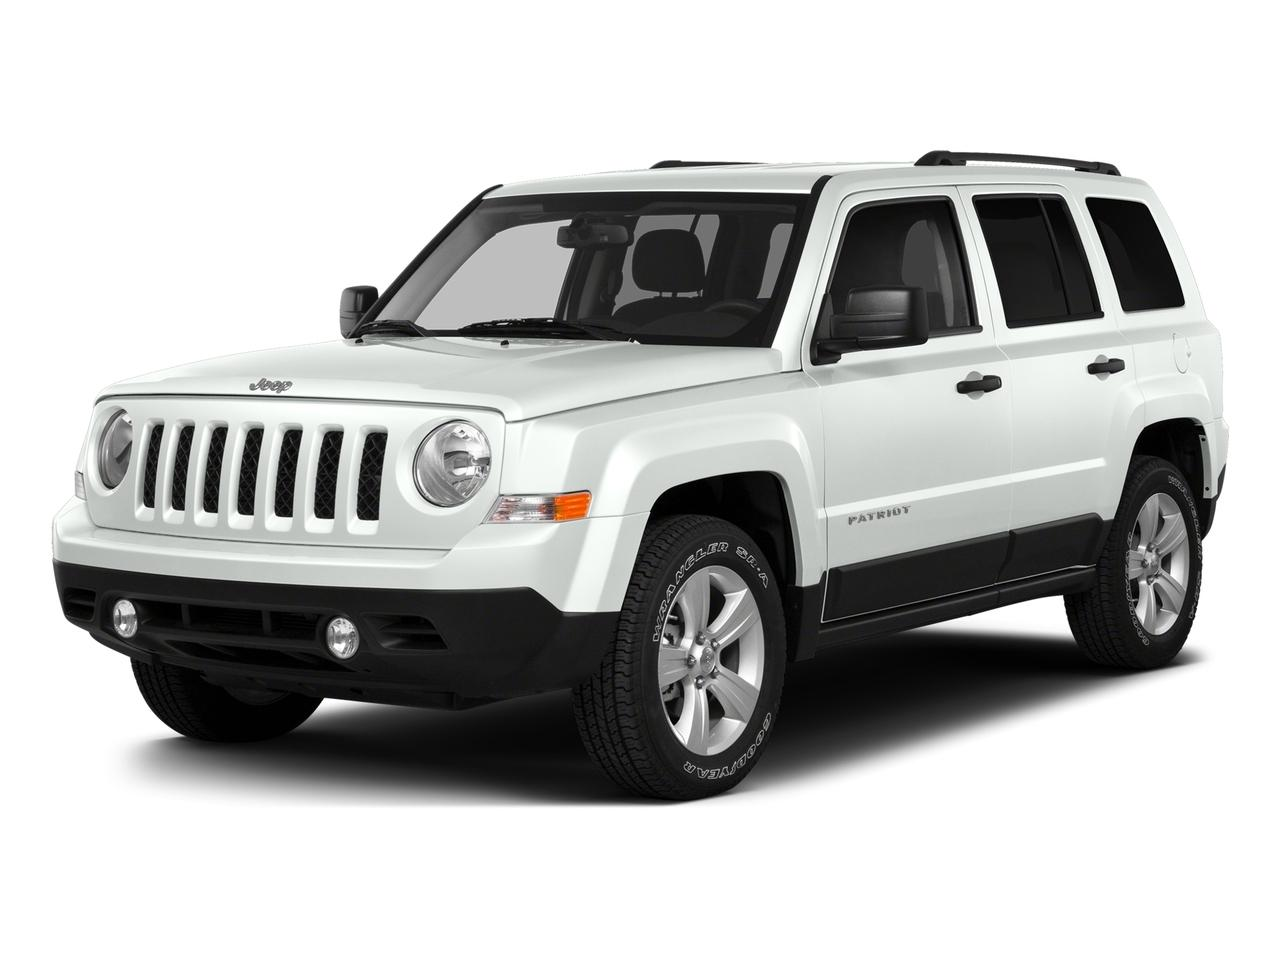 2016 Jeep Patriot Vehicle Photo in Moon Township, PA 15108